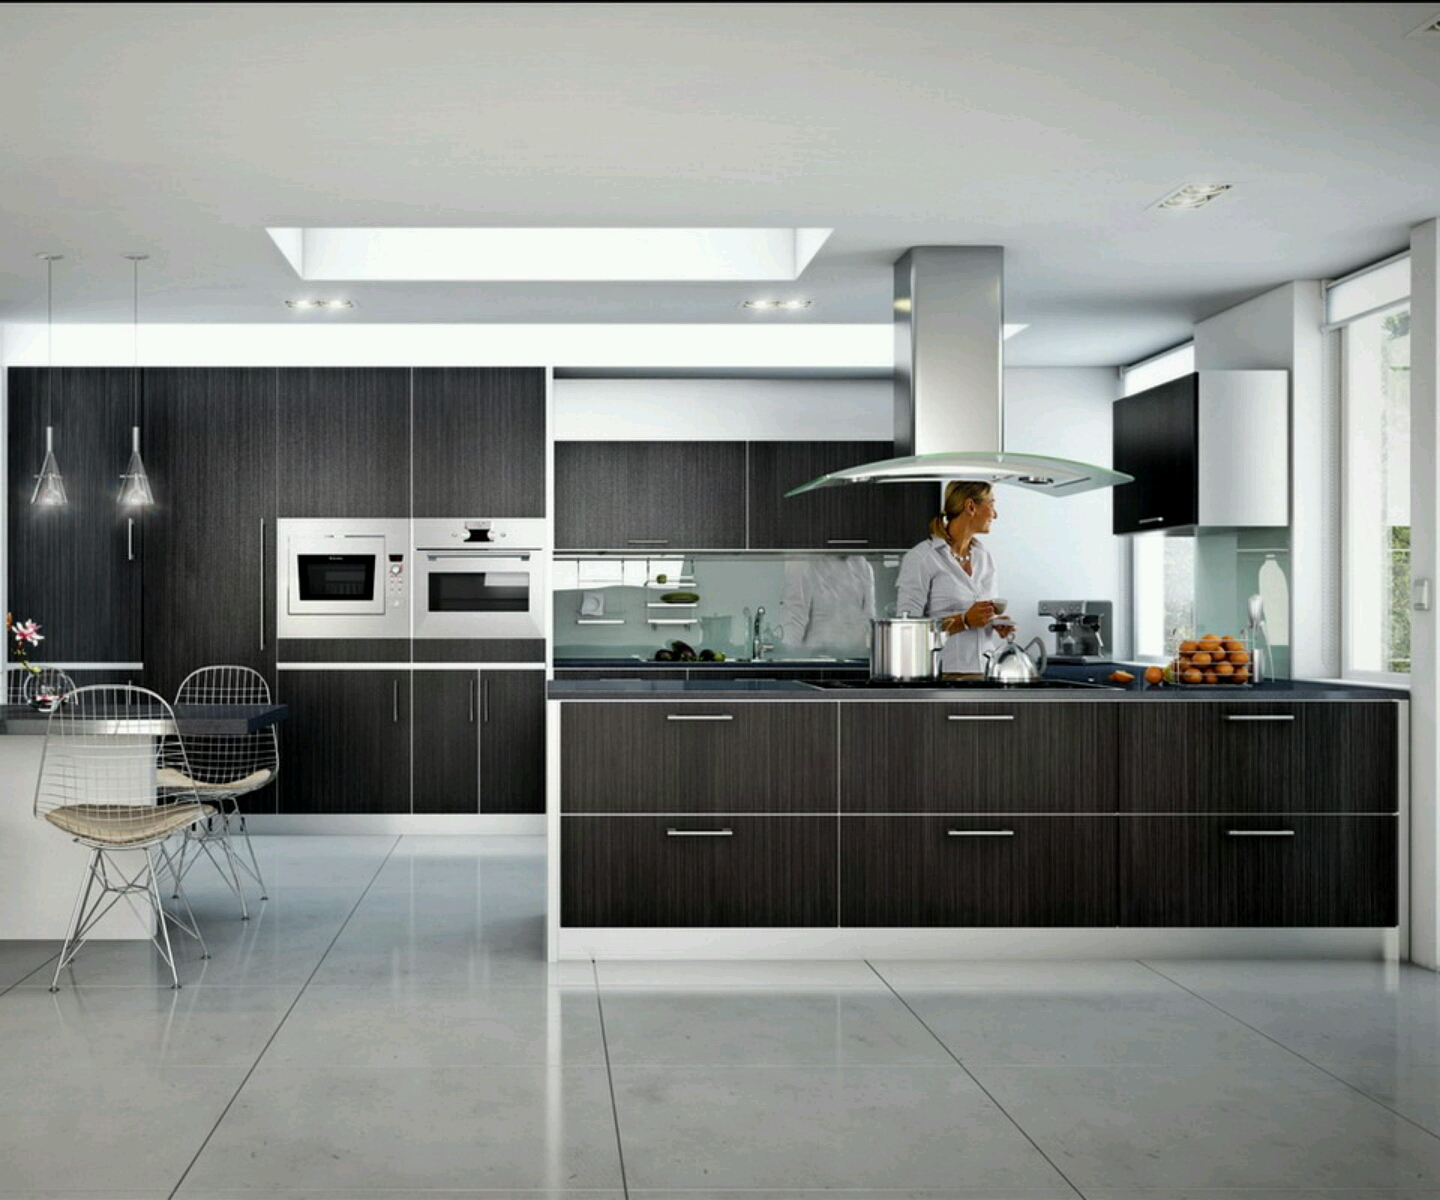 Tips Of Designing Nice And Simple Modern Kitchens. Color Schemes For Small Kitchens. Small Kitchen And Dining Ideas. Kitchen Island Sydney. Kitchen Island Base Kits. Kitchen Sinks White. L-shaped Kitchen Layout Ideas With Island. White Kitchen Cabinets With Glass Doors. Cherry Wood Kitchen Island Table